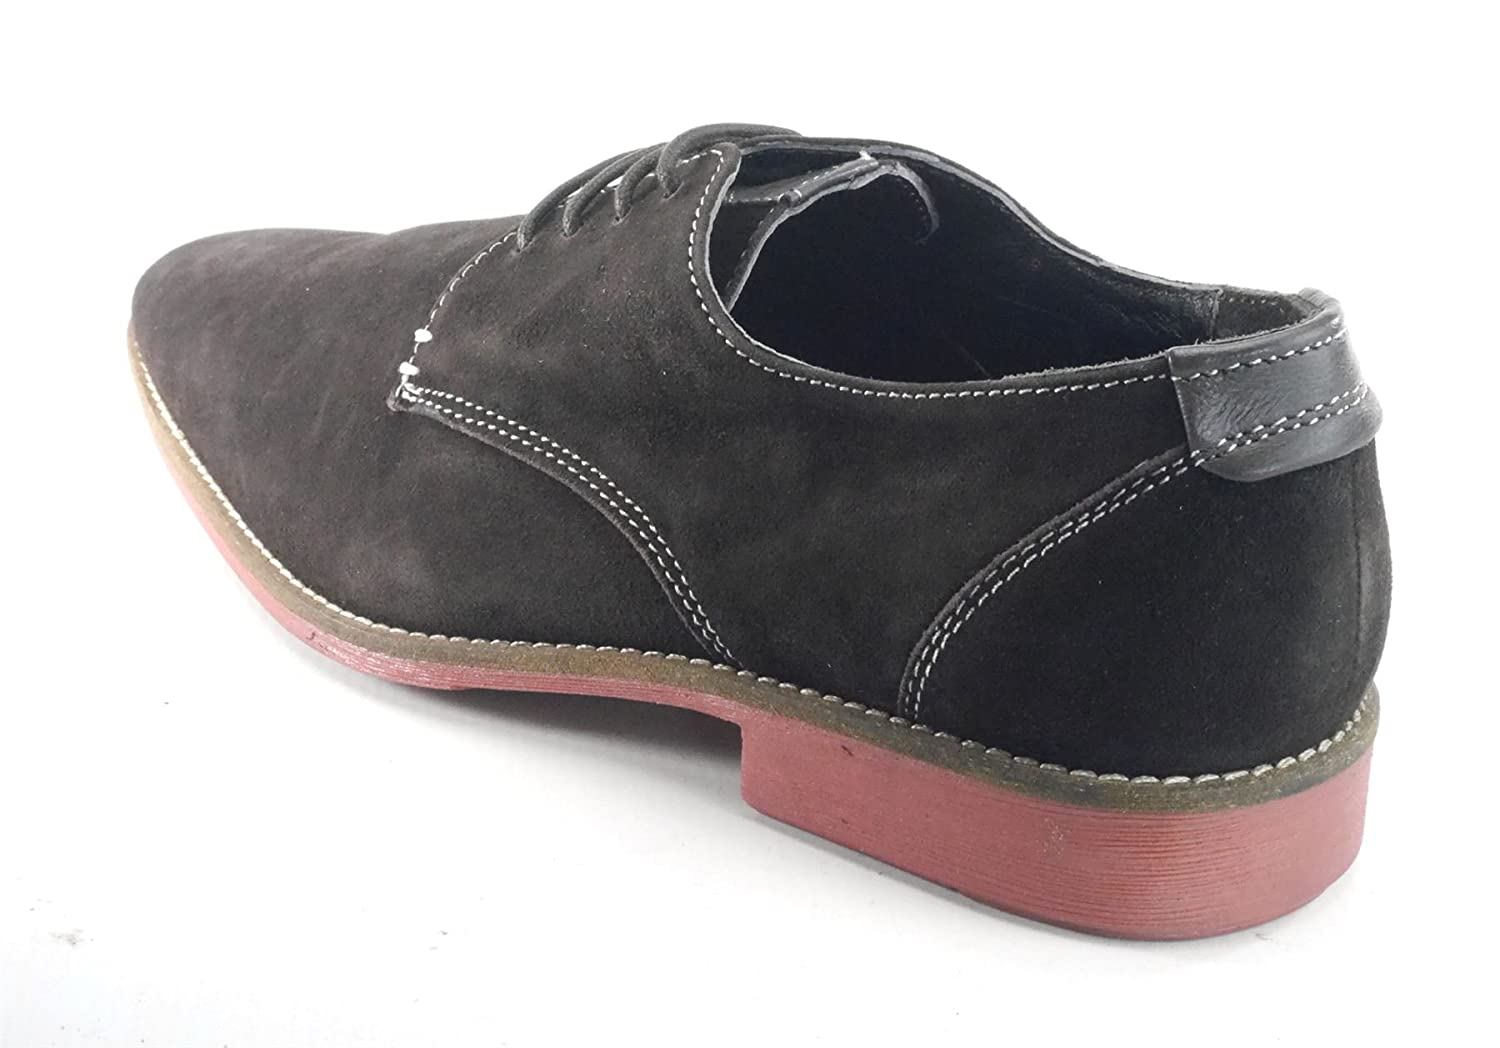 Jones Bootmaker Mens Suede 4 Eye Derby Loafer Tan or Navy: Amazon.co.uk:  Shoes & Bags